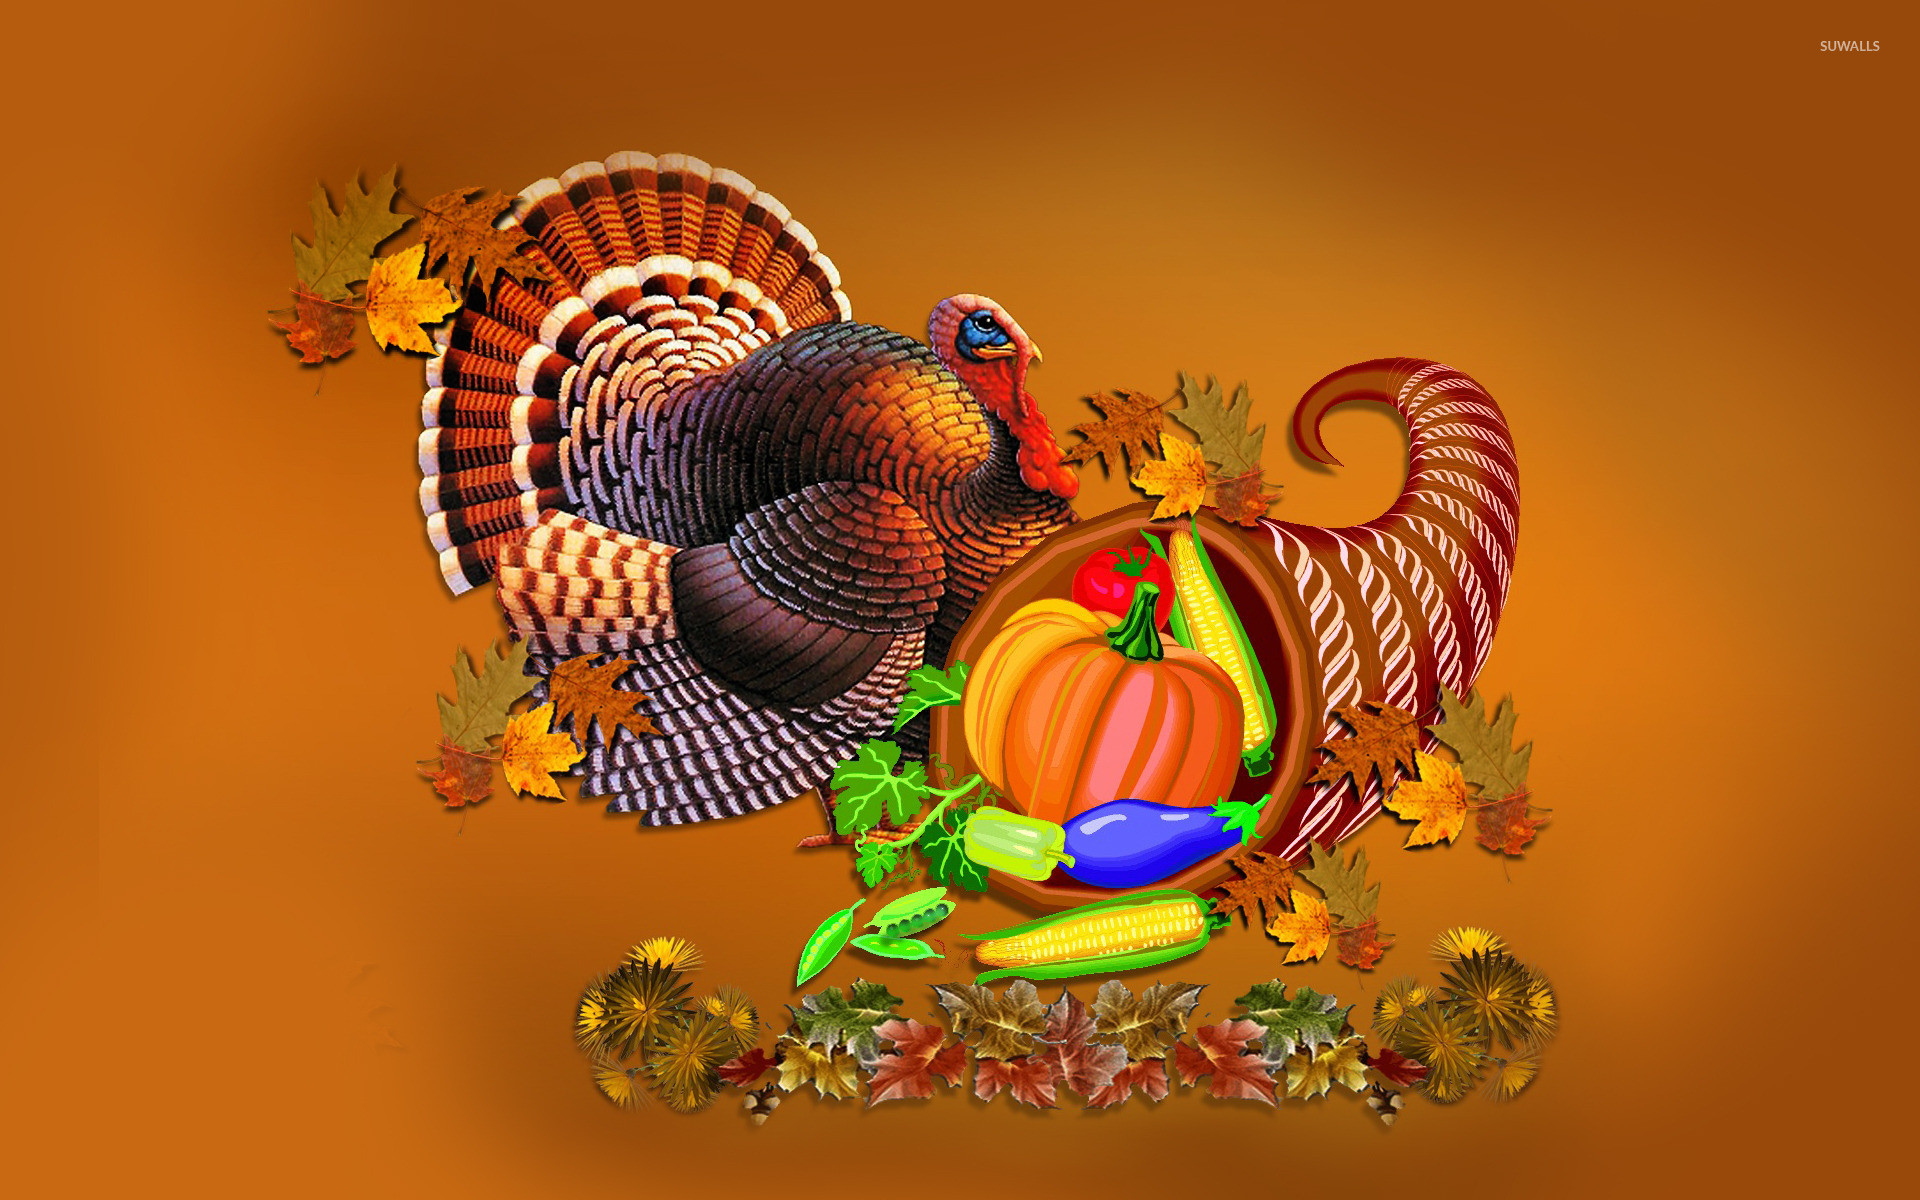 1920x1200 Thanksgiving turkey and cornucopia wallpaper  jpg